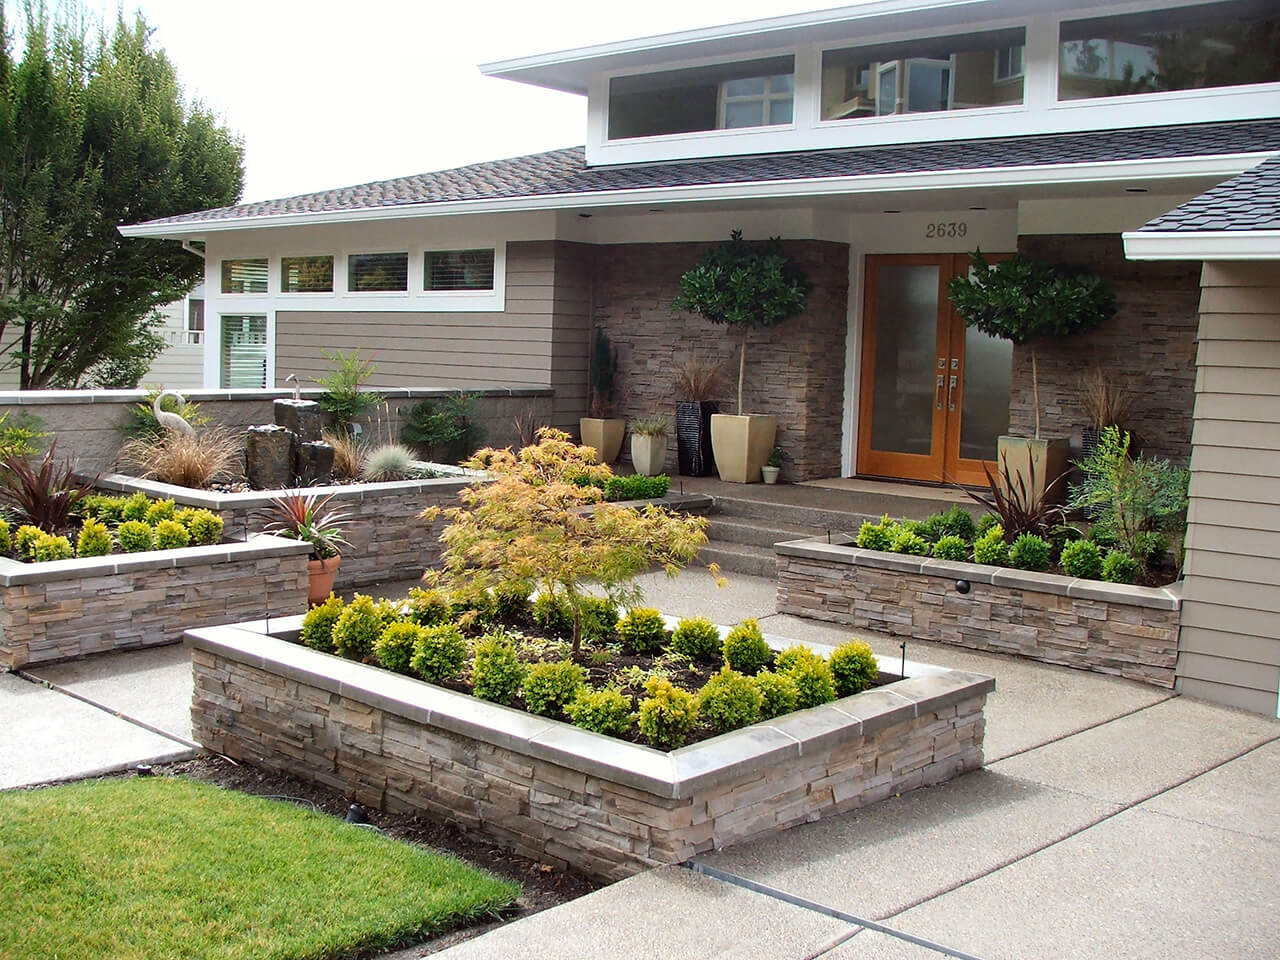 50 best front yard landscaping ideas and garden designs for Landscape design ideas